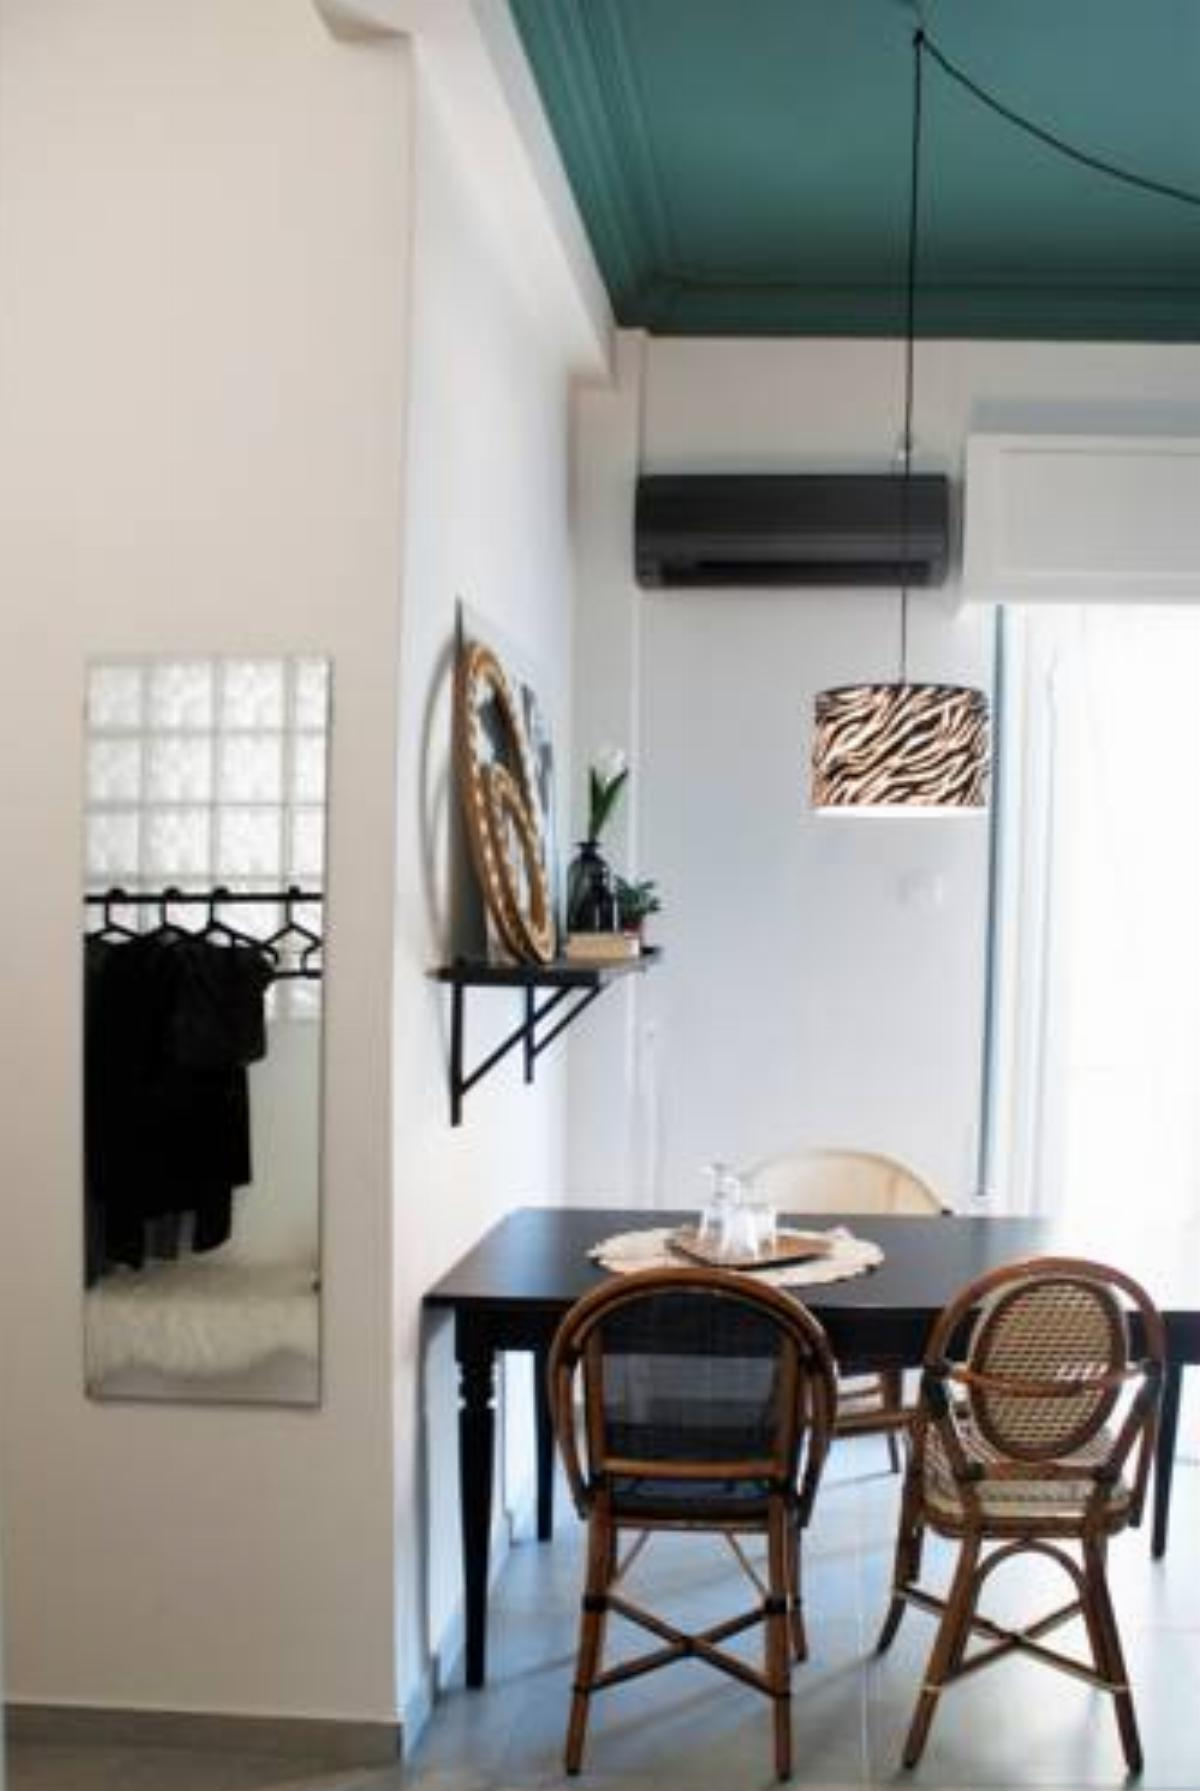 Athens Apartment Hotel, Athens, Greece - overview